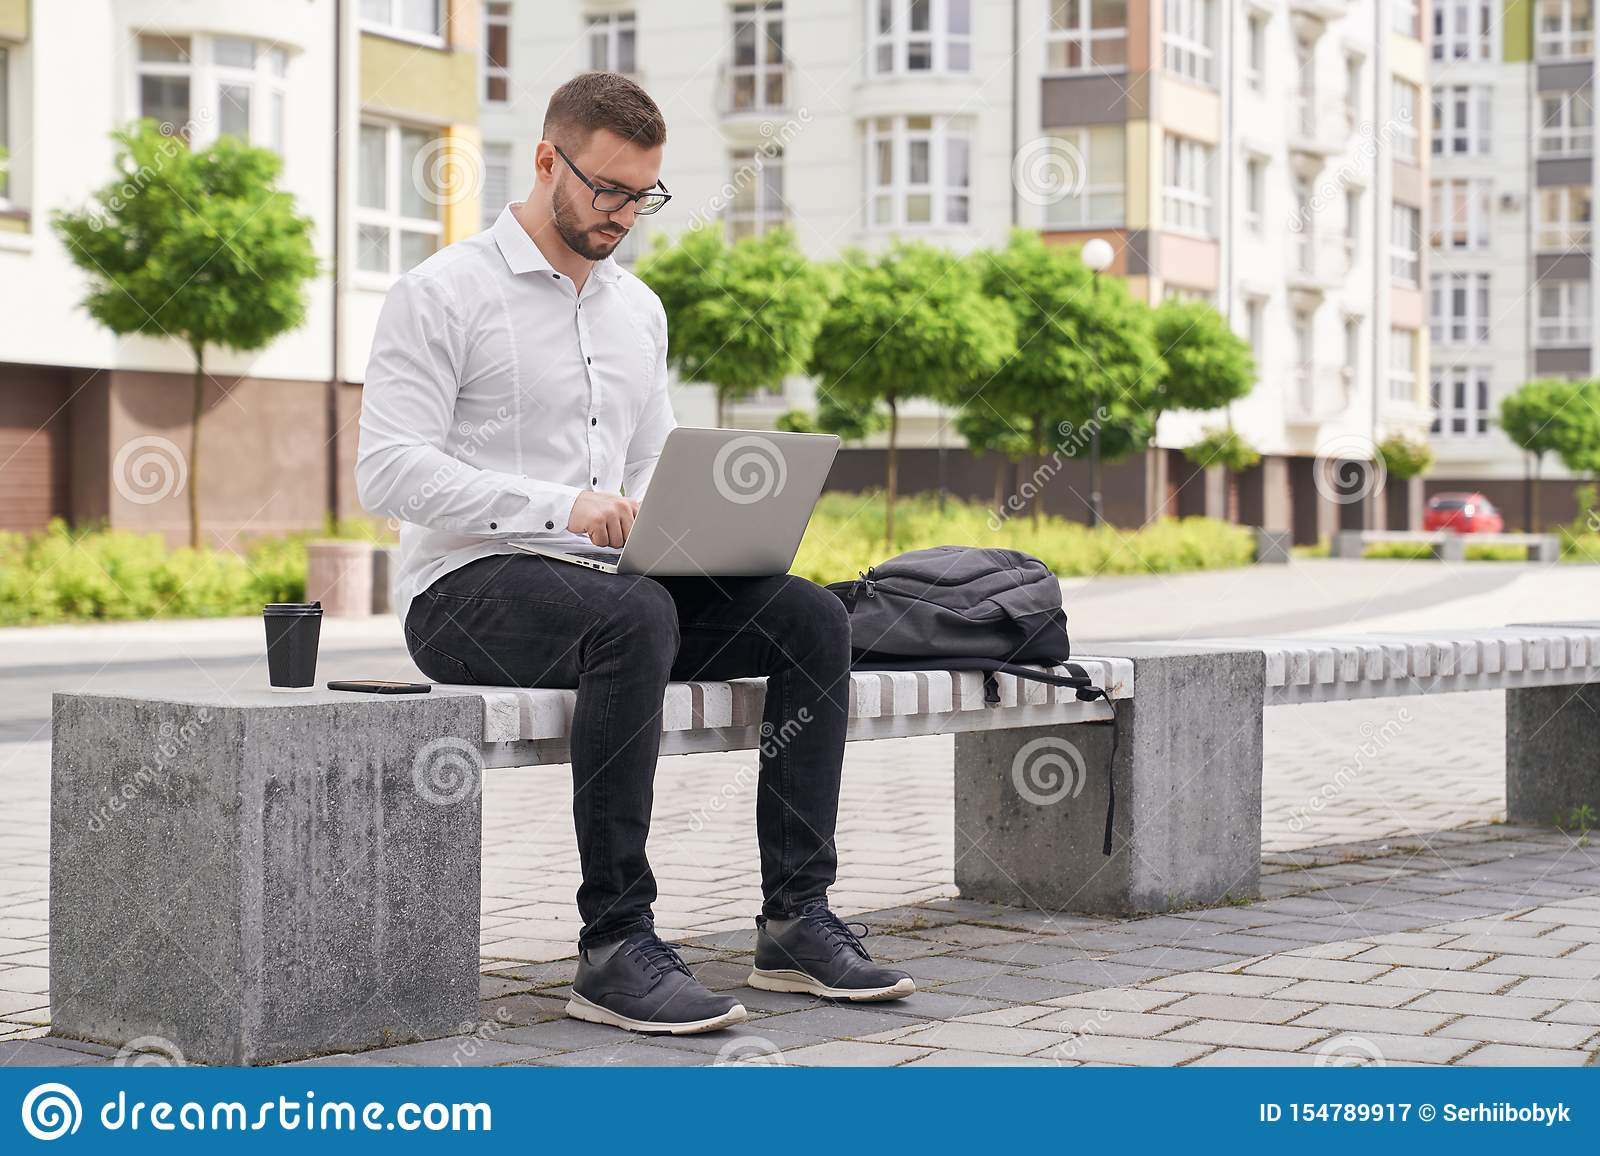 Handsome man sitting on bench, working on laptop outdoors.